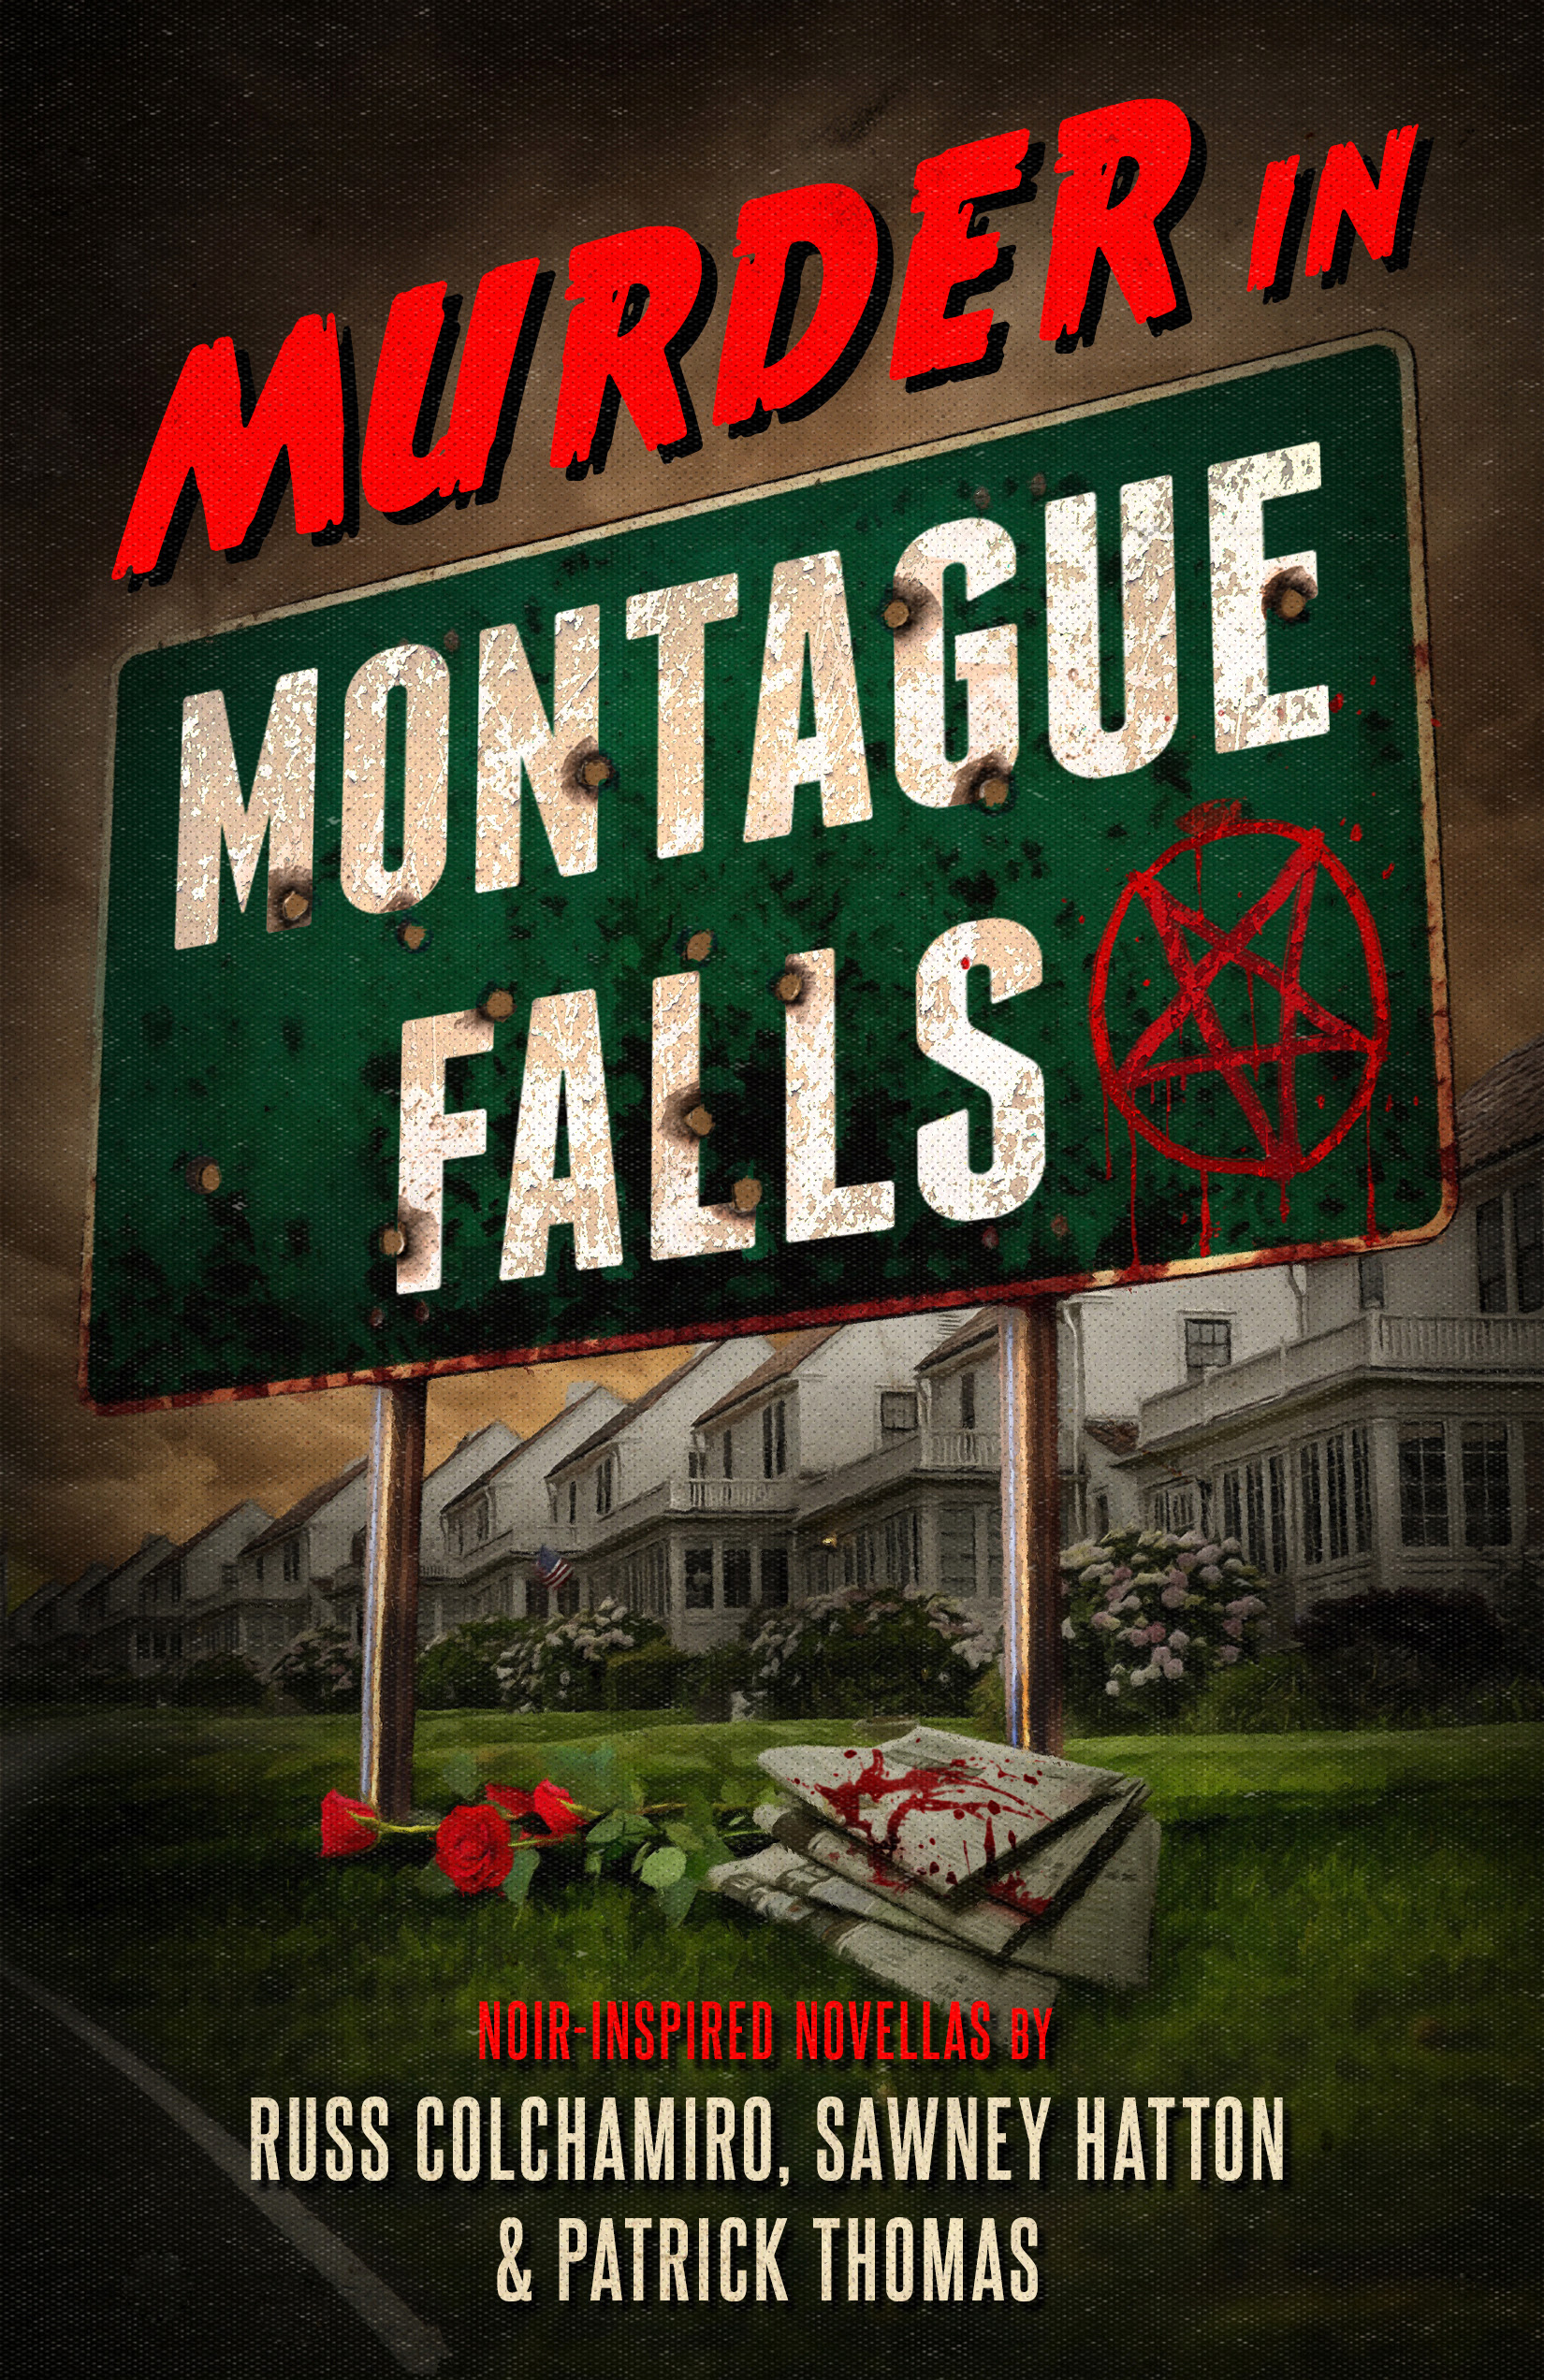 Murder in Montague Falls by Russ Colchamiro, Sawney Hatton, Patrick Thomas